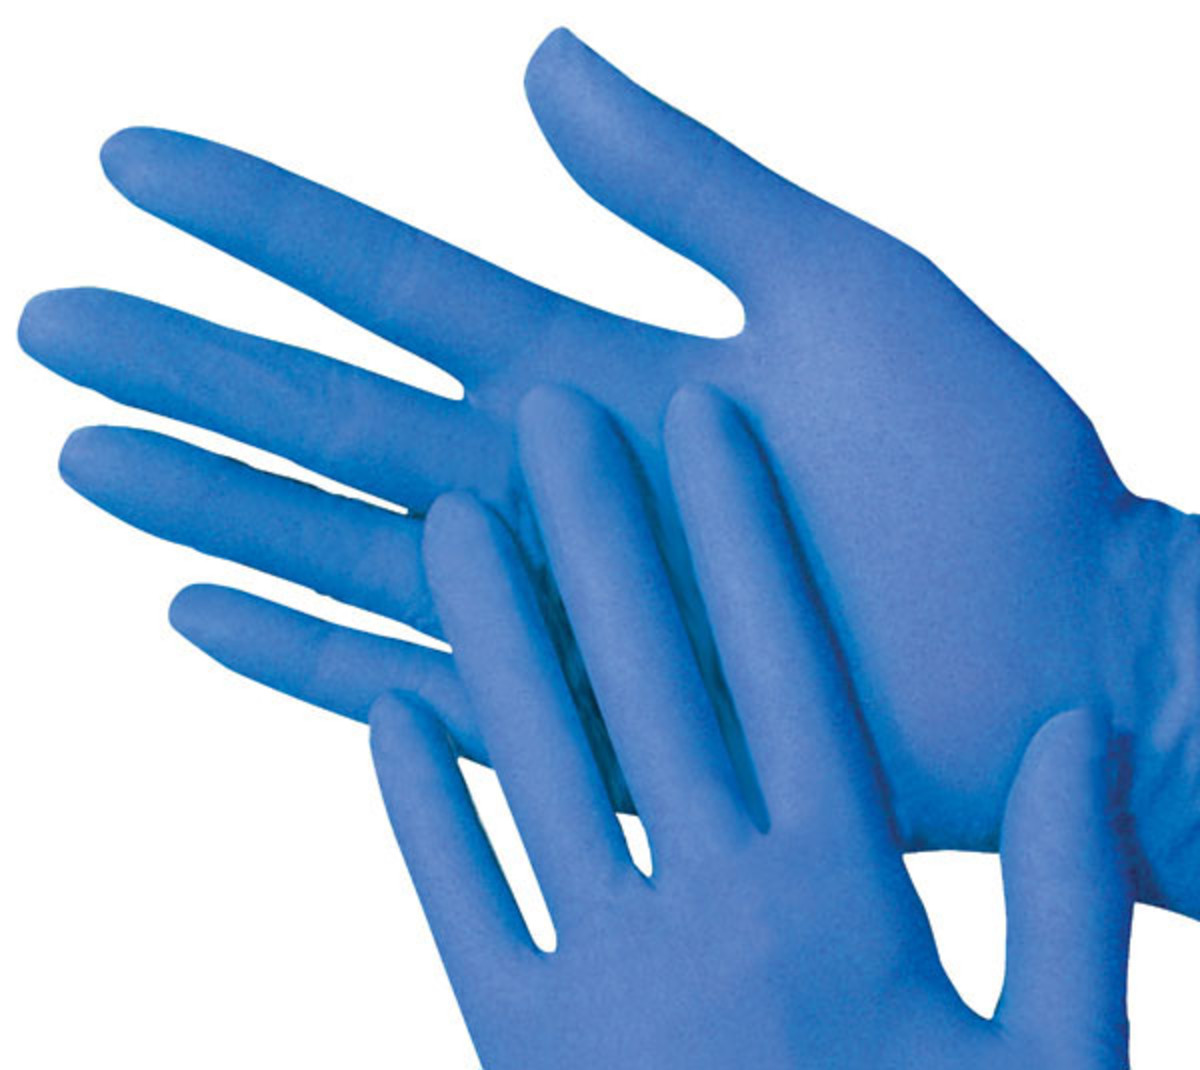 an-allergy-guide-for-health-workers-non-latex-nitrile-gloves